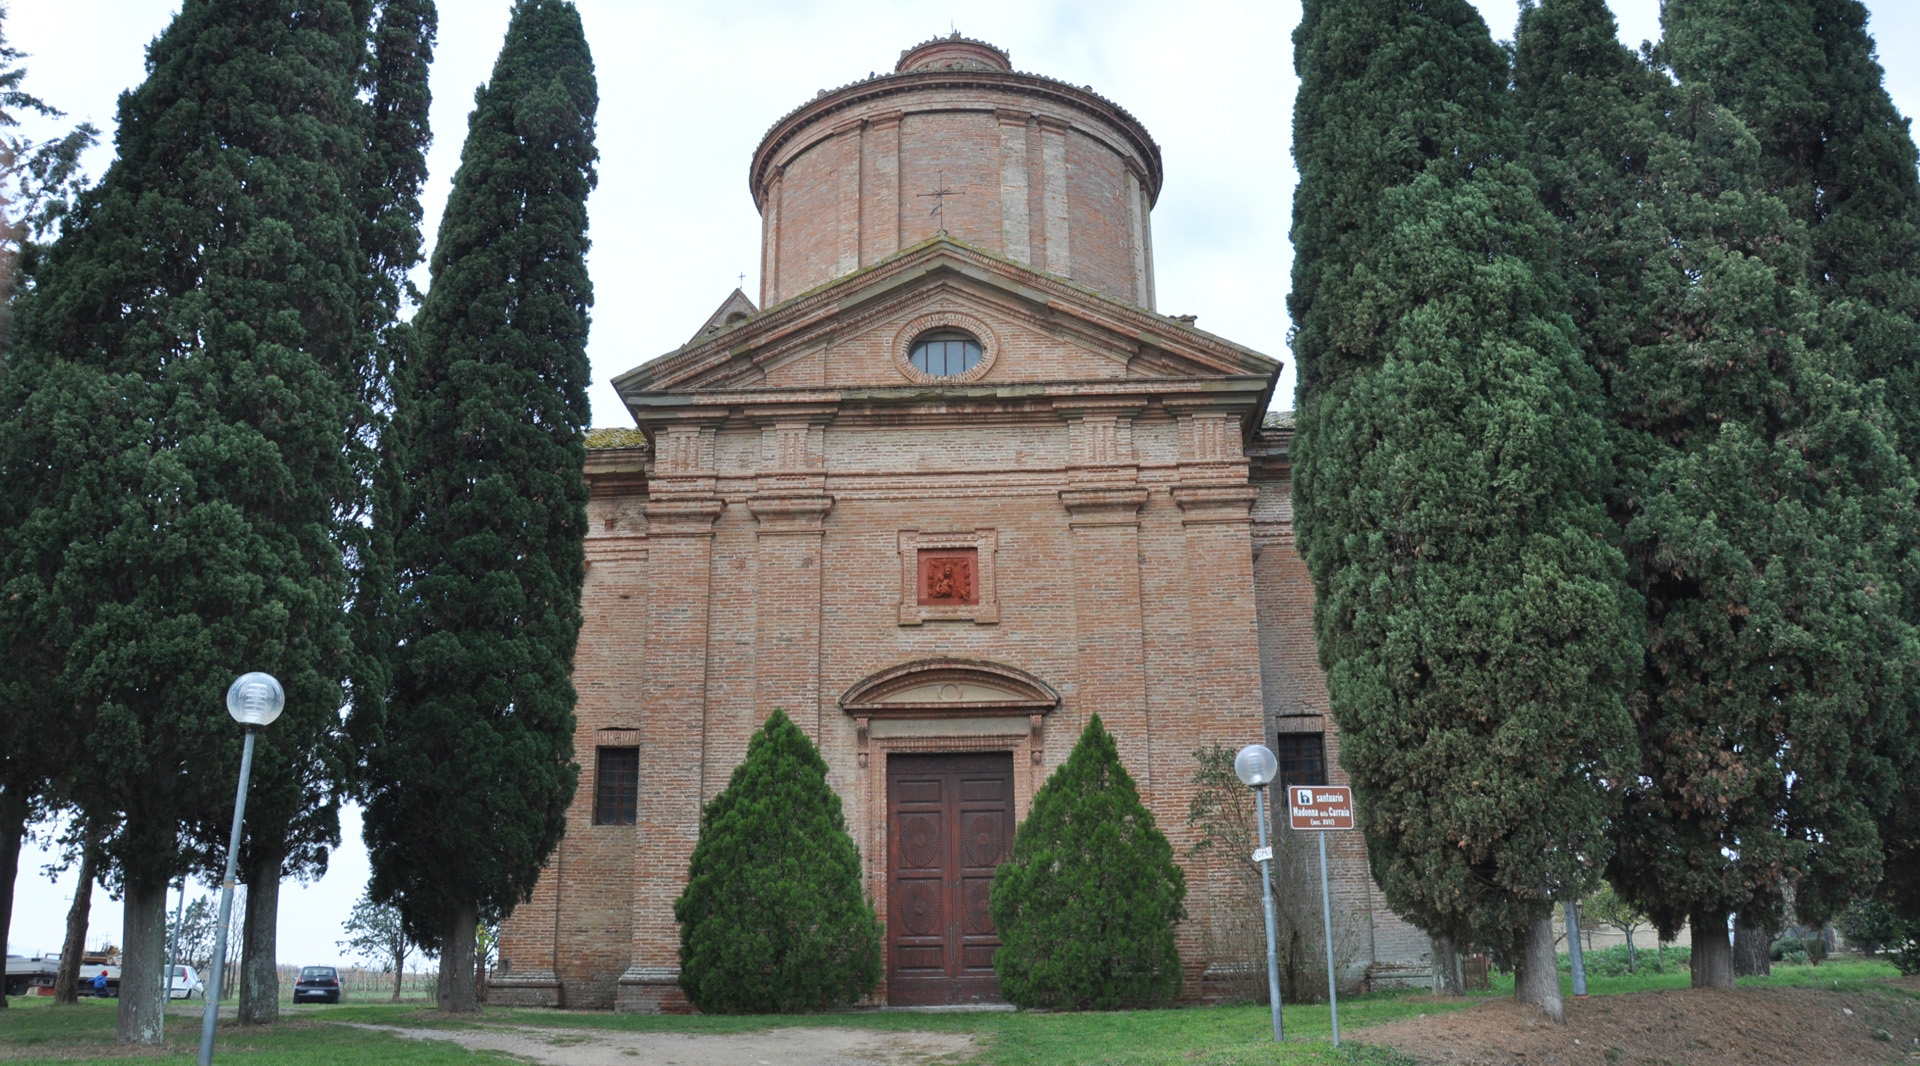 Sanctuary of Madonna della Carraia